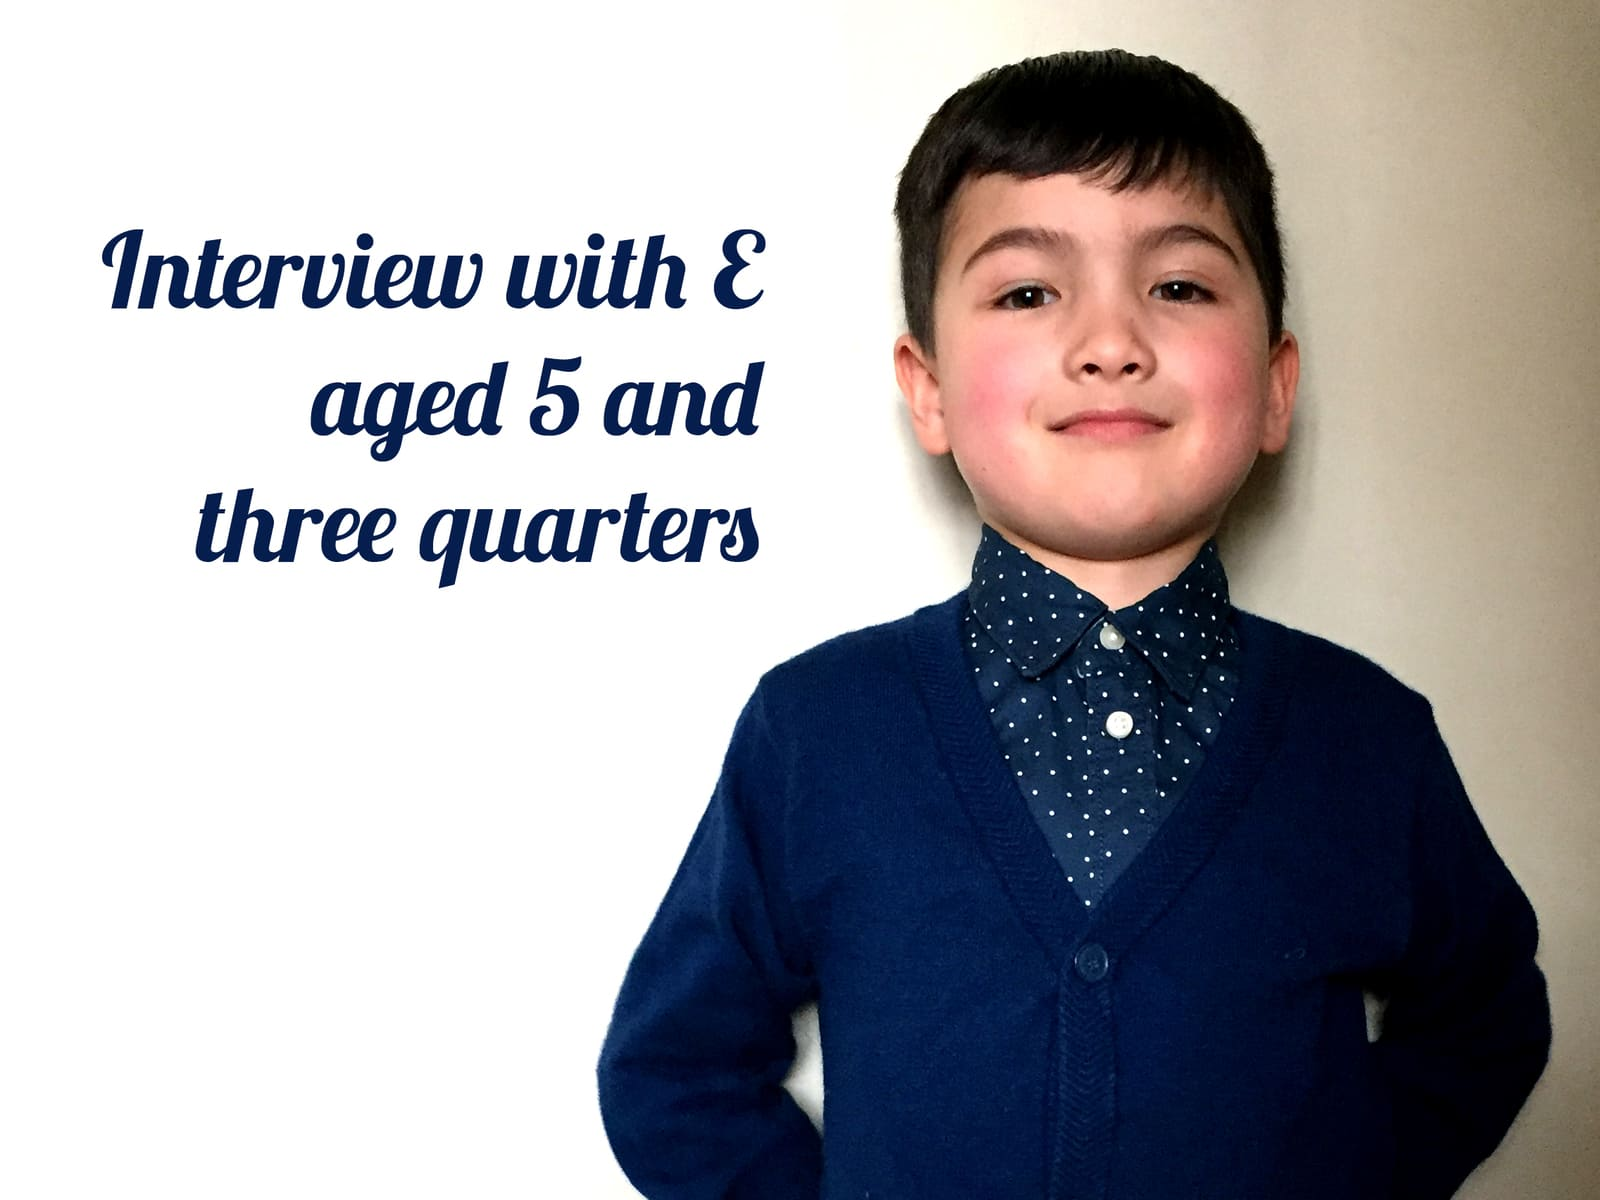 Interview with E aged 5 and three quarters